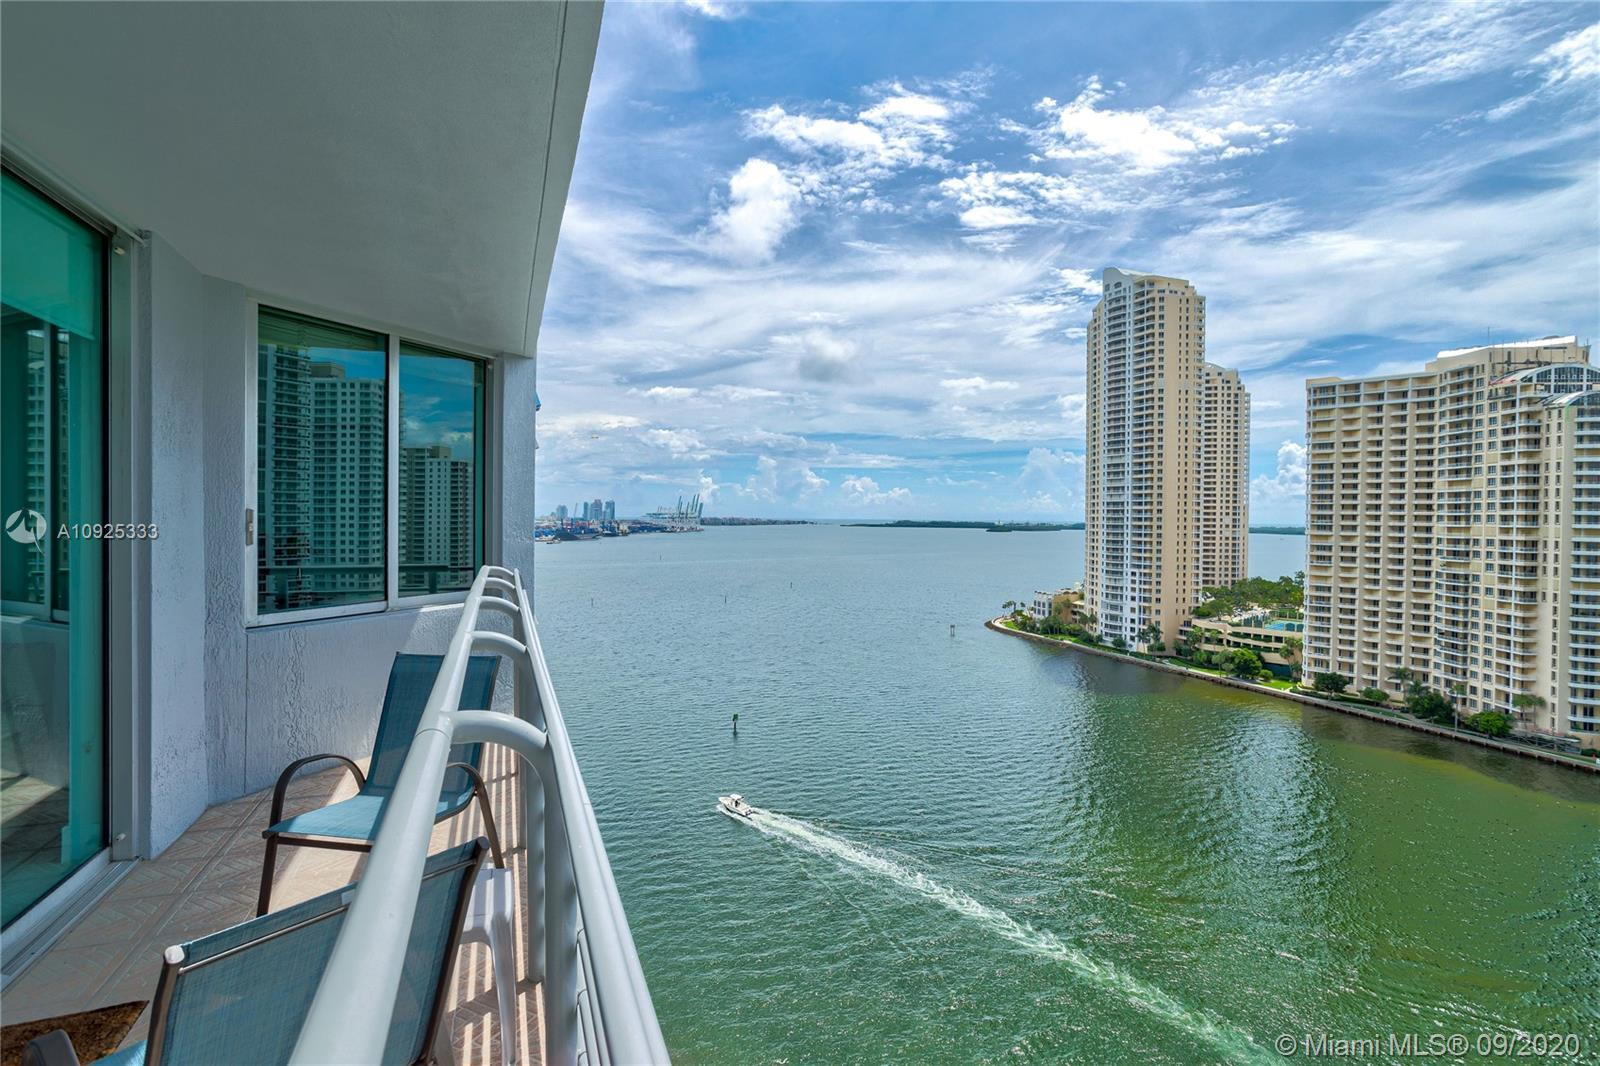 Step into an oasis of unrivaled & unobstructed water views of Biscayne Bay. This 18thfloor